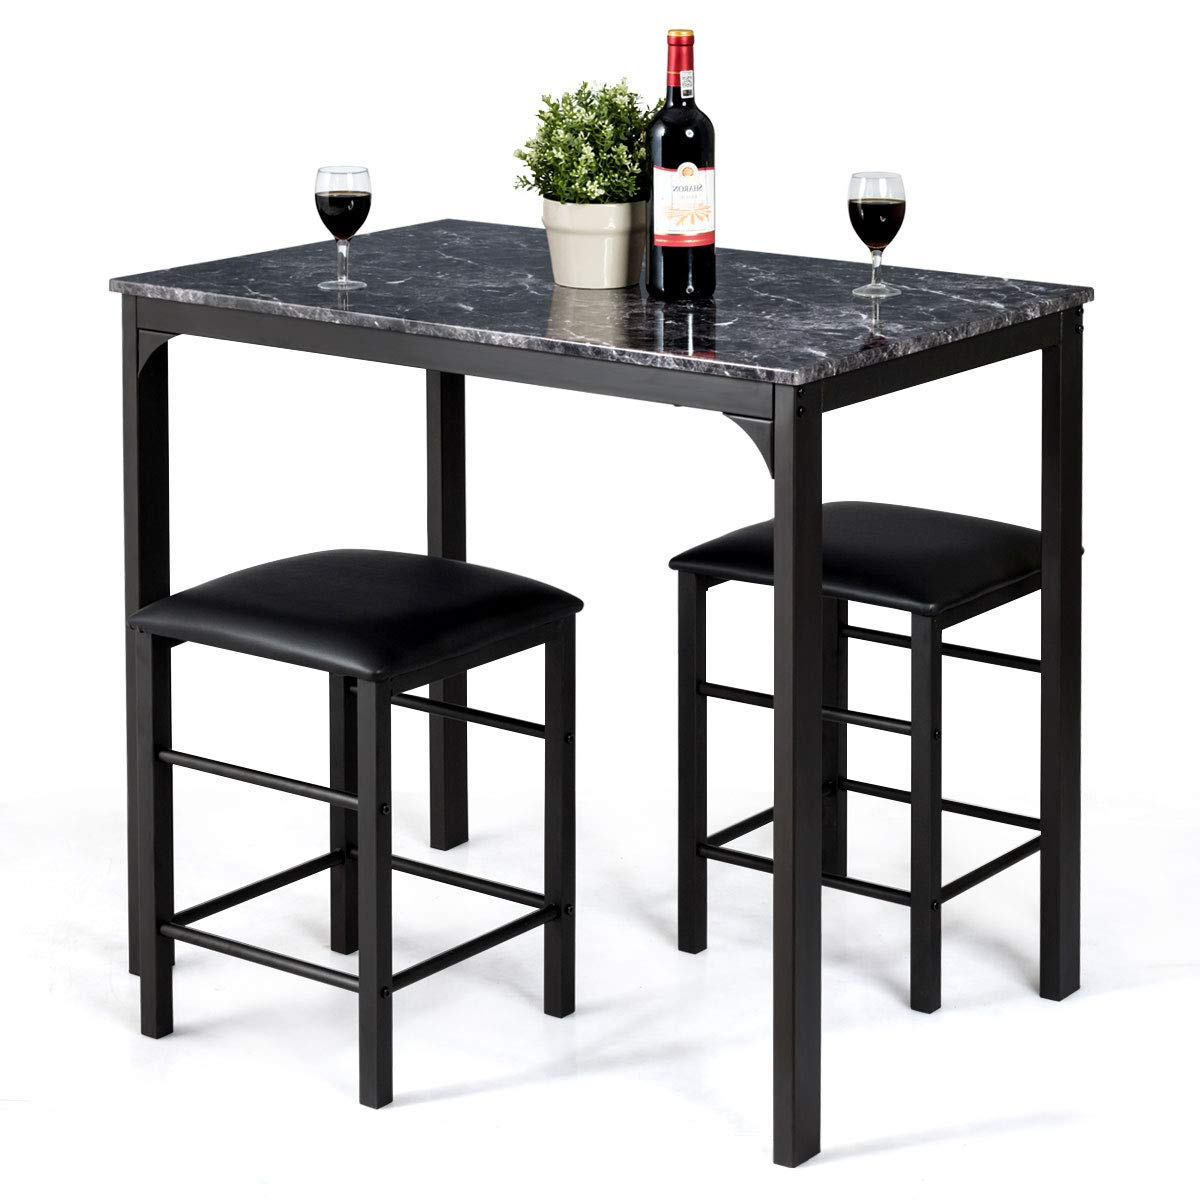 3 Pieces Dining Tables And Chair Set Intended For Recent Giantex 3 Pcs Dining Table And Chairs Set With Faux Marble Tabletop 2 Chairs Contemporary Dining Table Set For Home Or Hotel Dining Room, Kitchen Or (View 2 of 30)